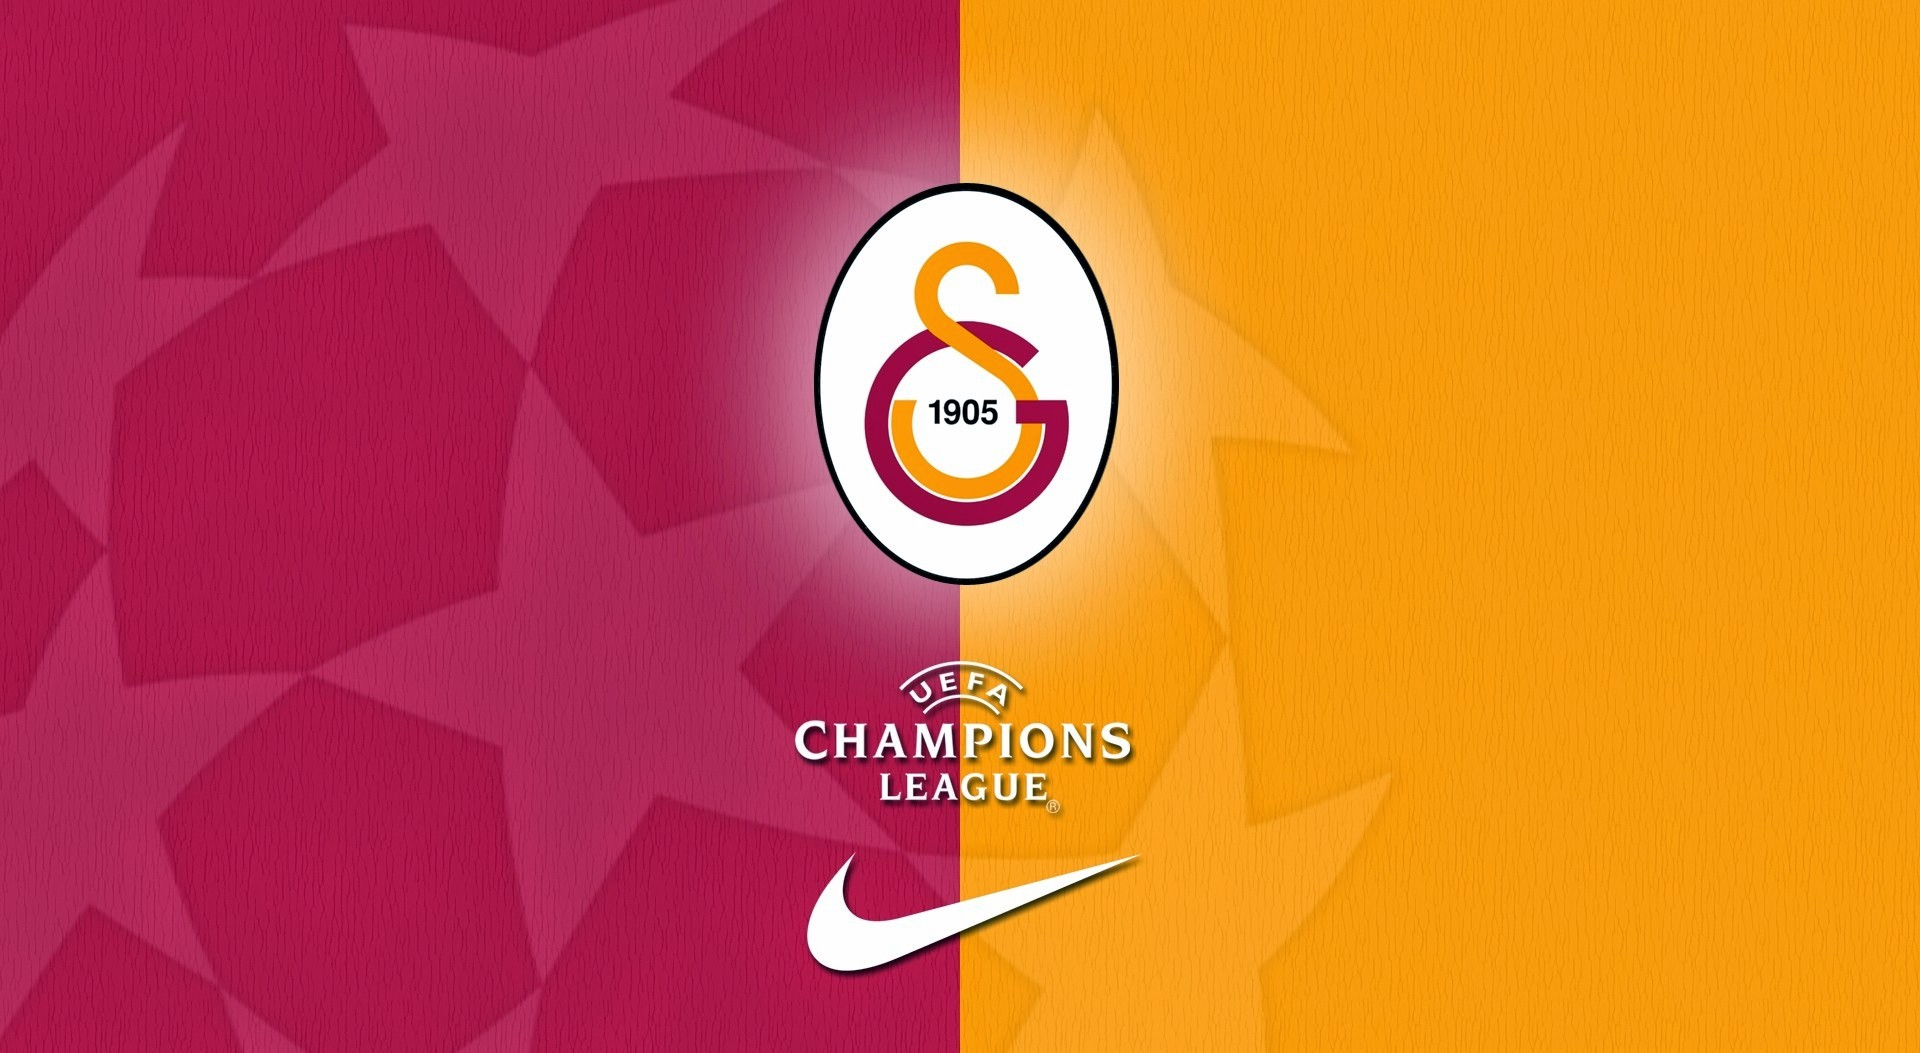 Download Galatasaray Wallpapers in HD For Desktop or Gadget 1920x1053